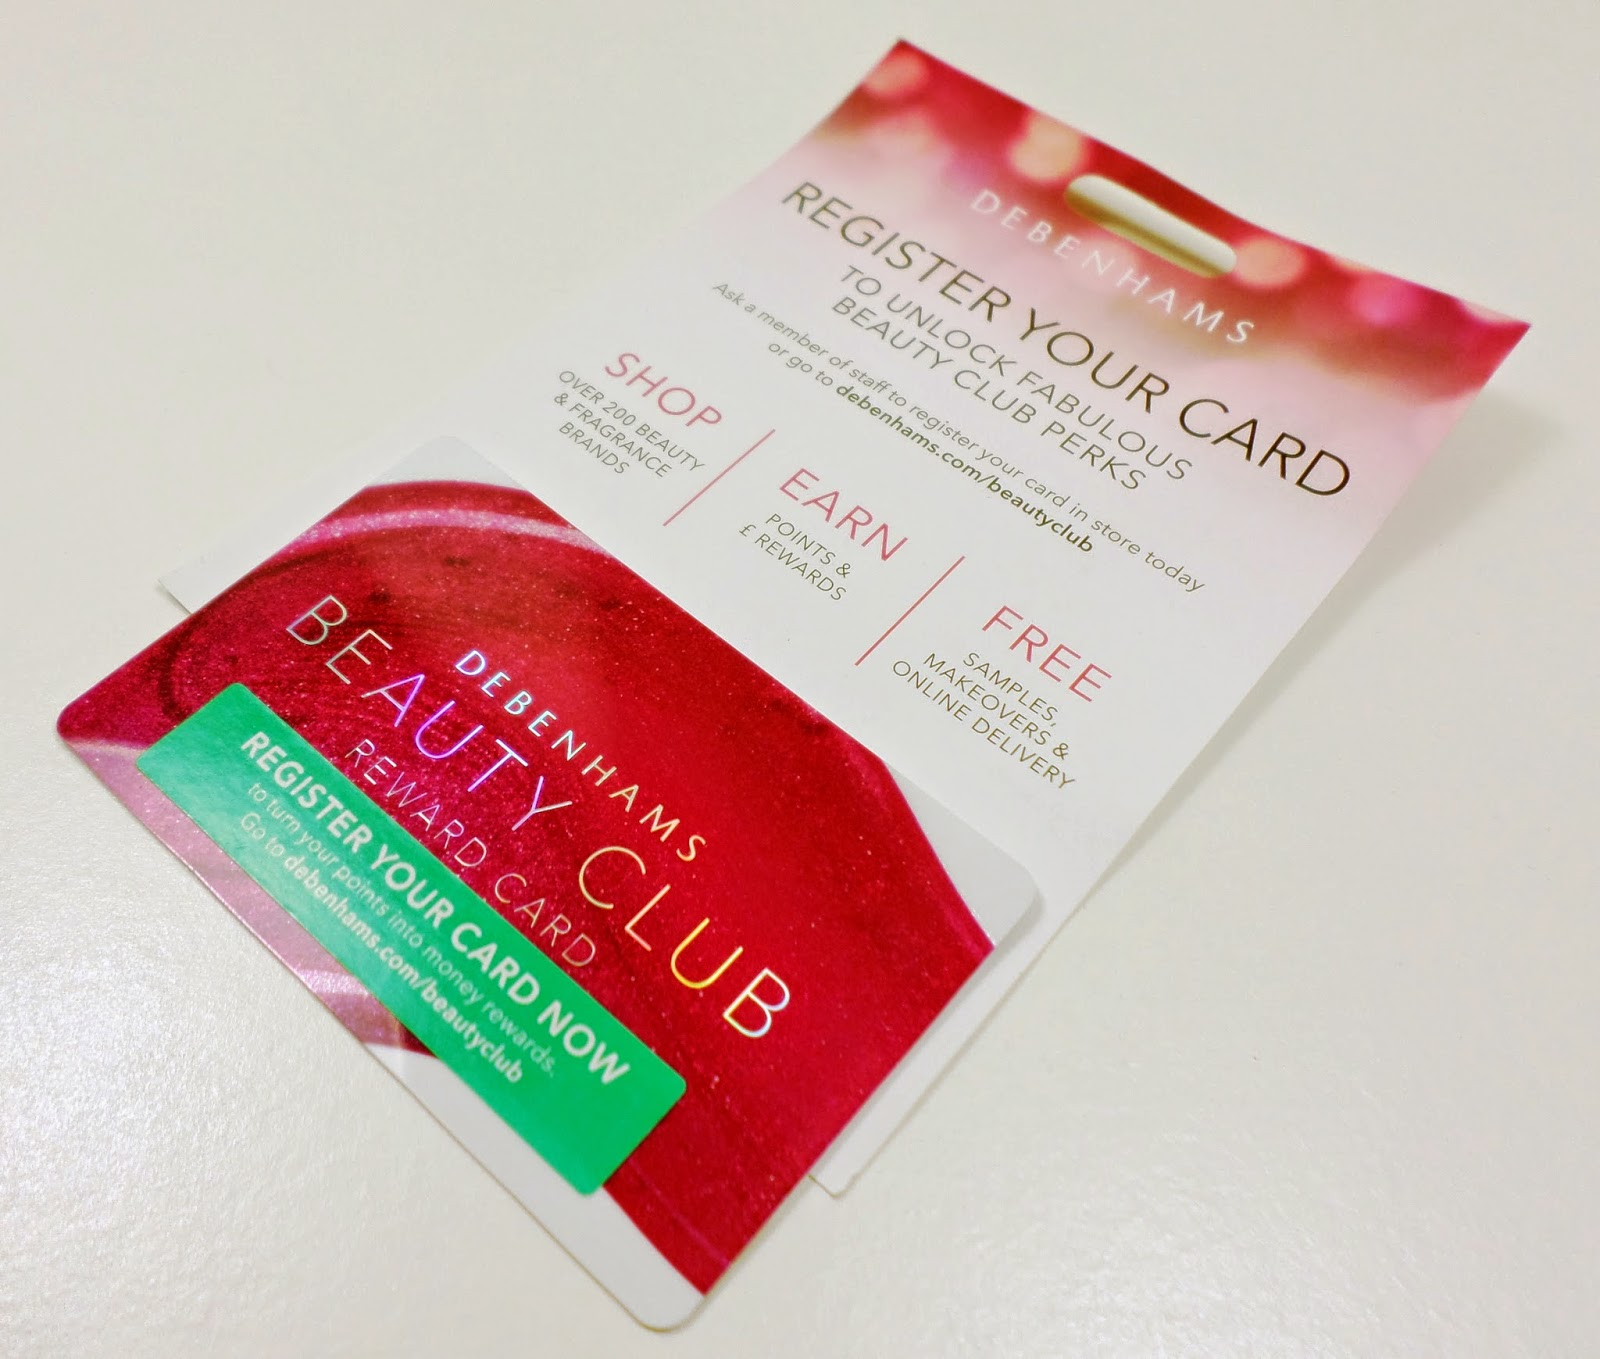 Debenhams Beauty Club Reward Card